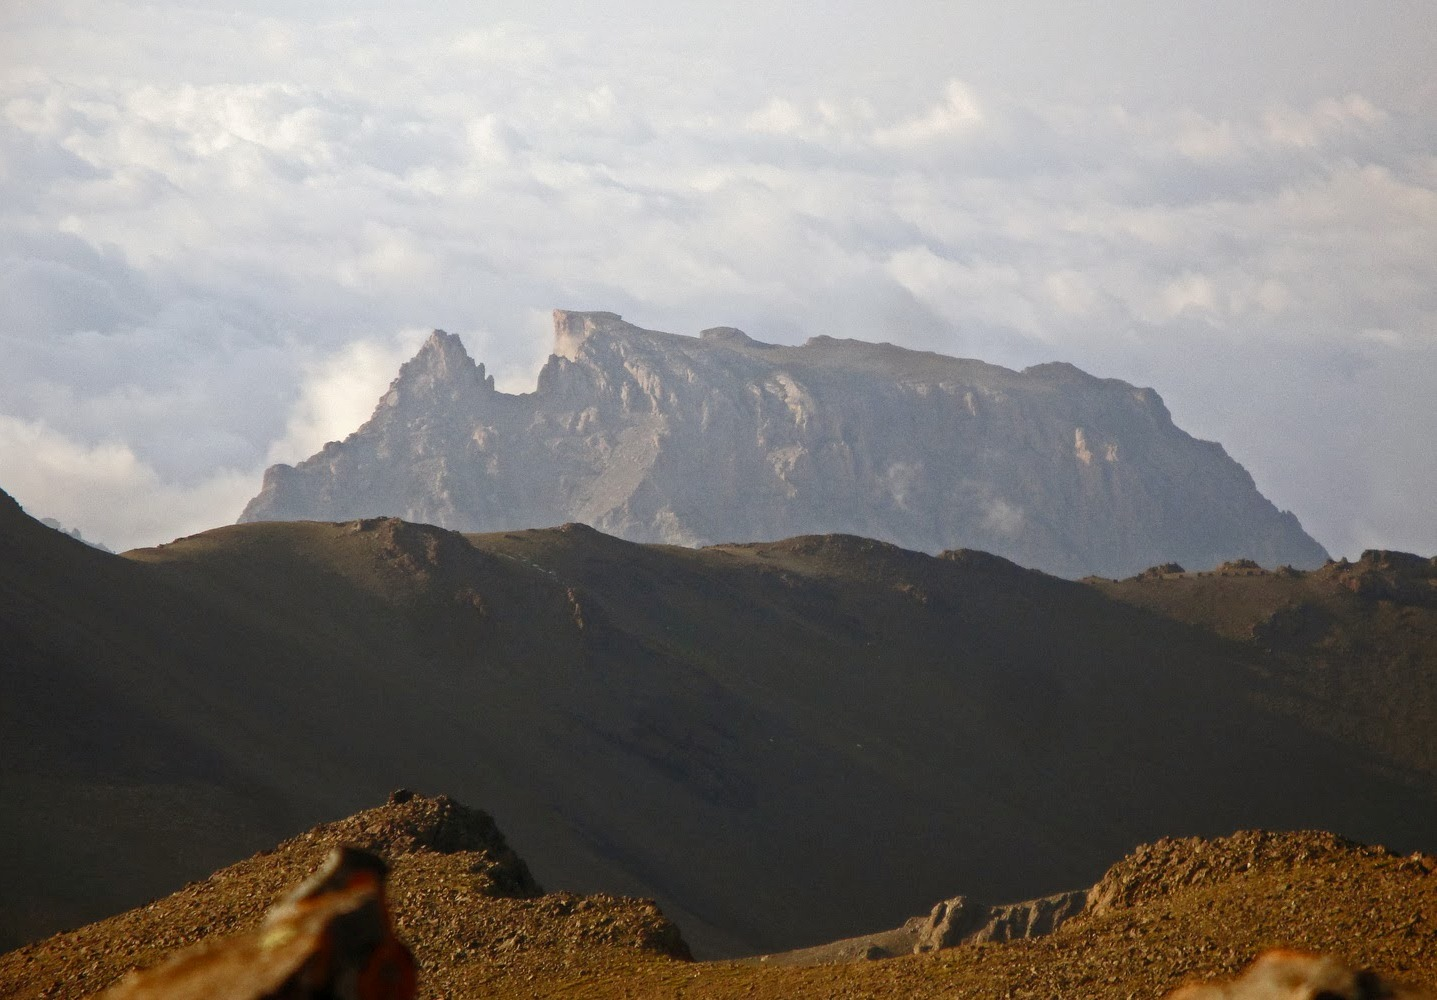 Mount_Kyapaz,_view_from_Mount_Gomshasar,_2013.08.13_(01)_1